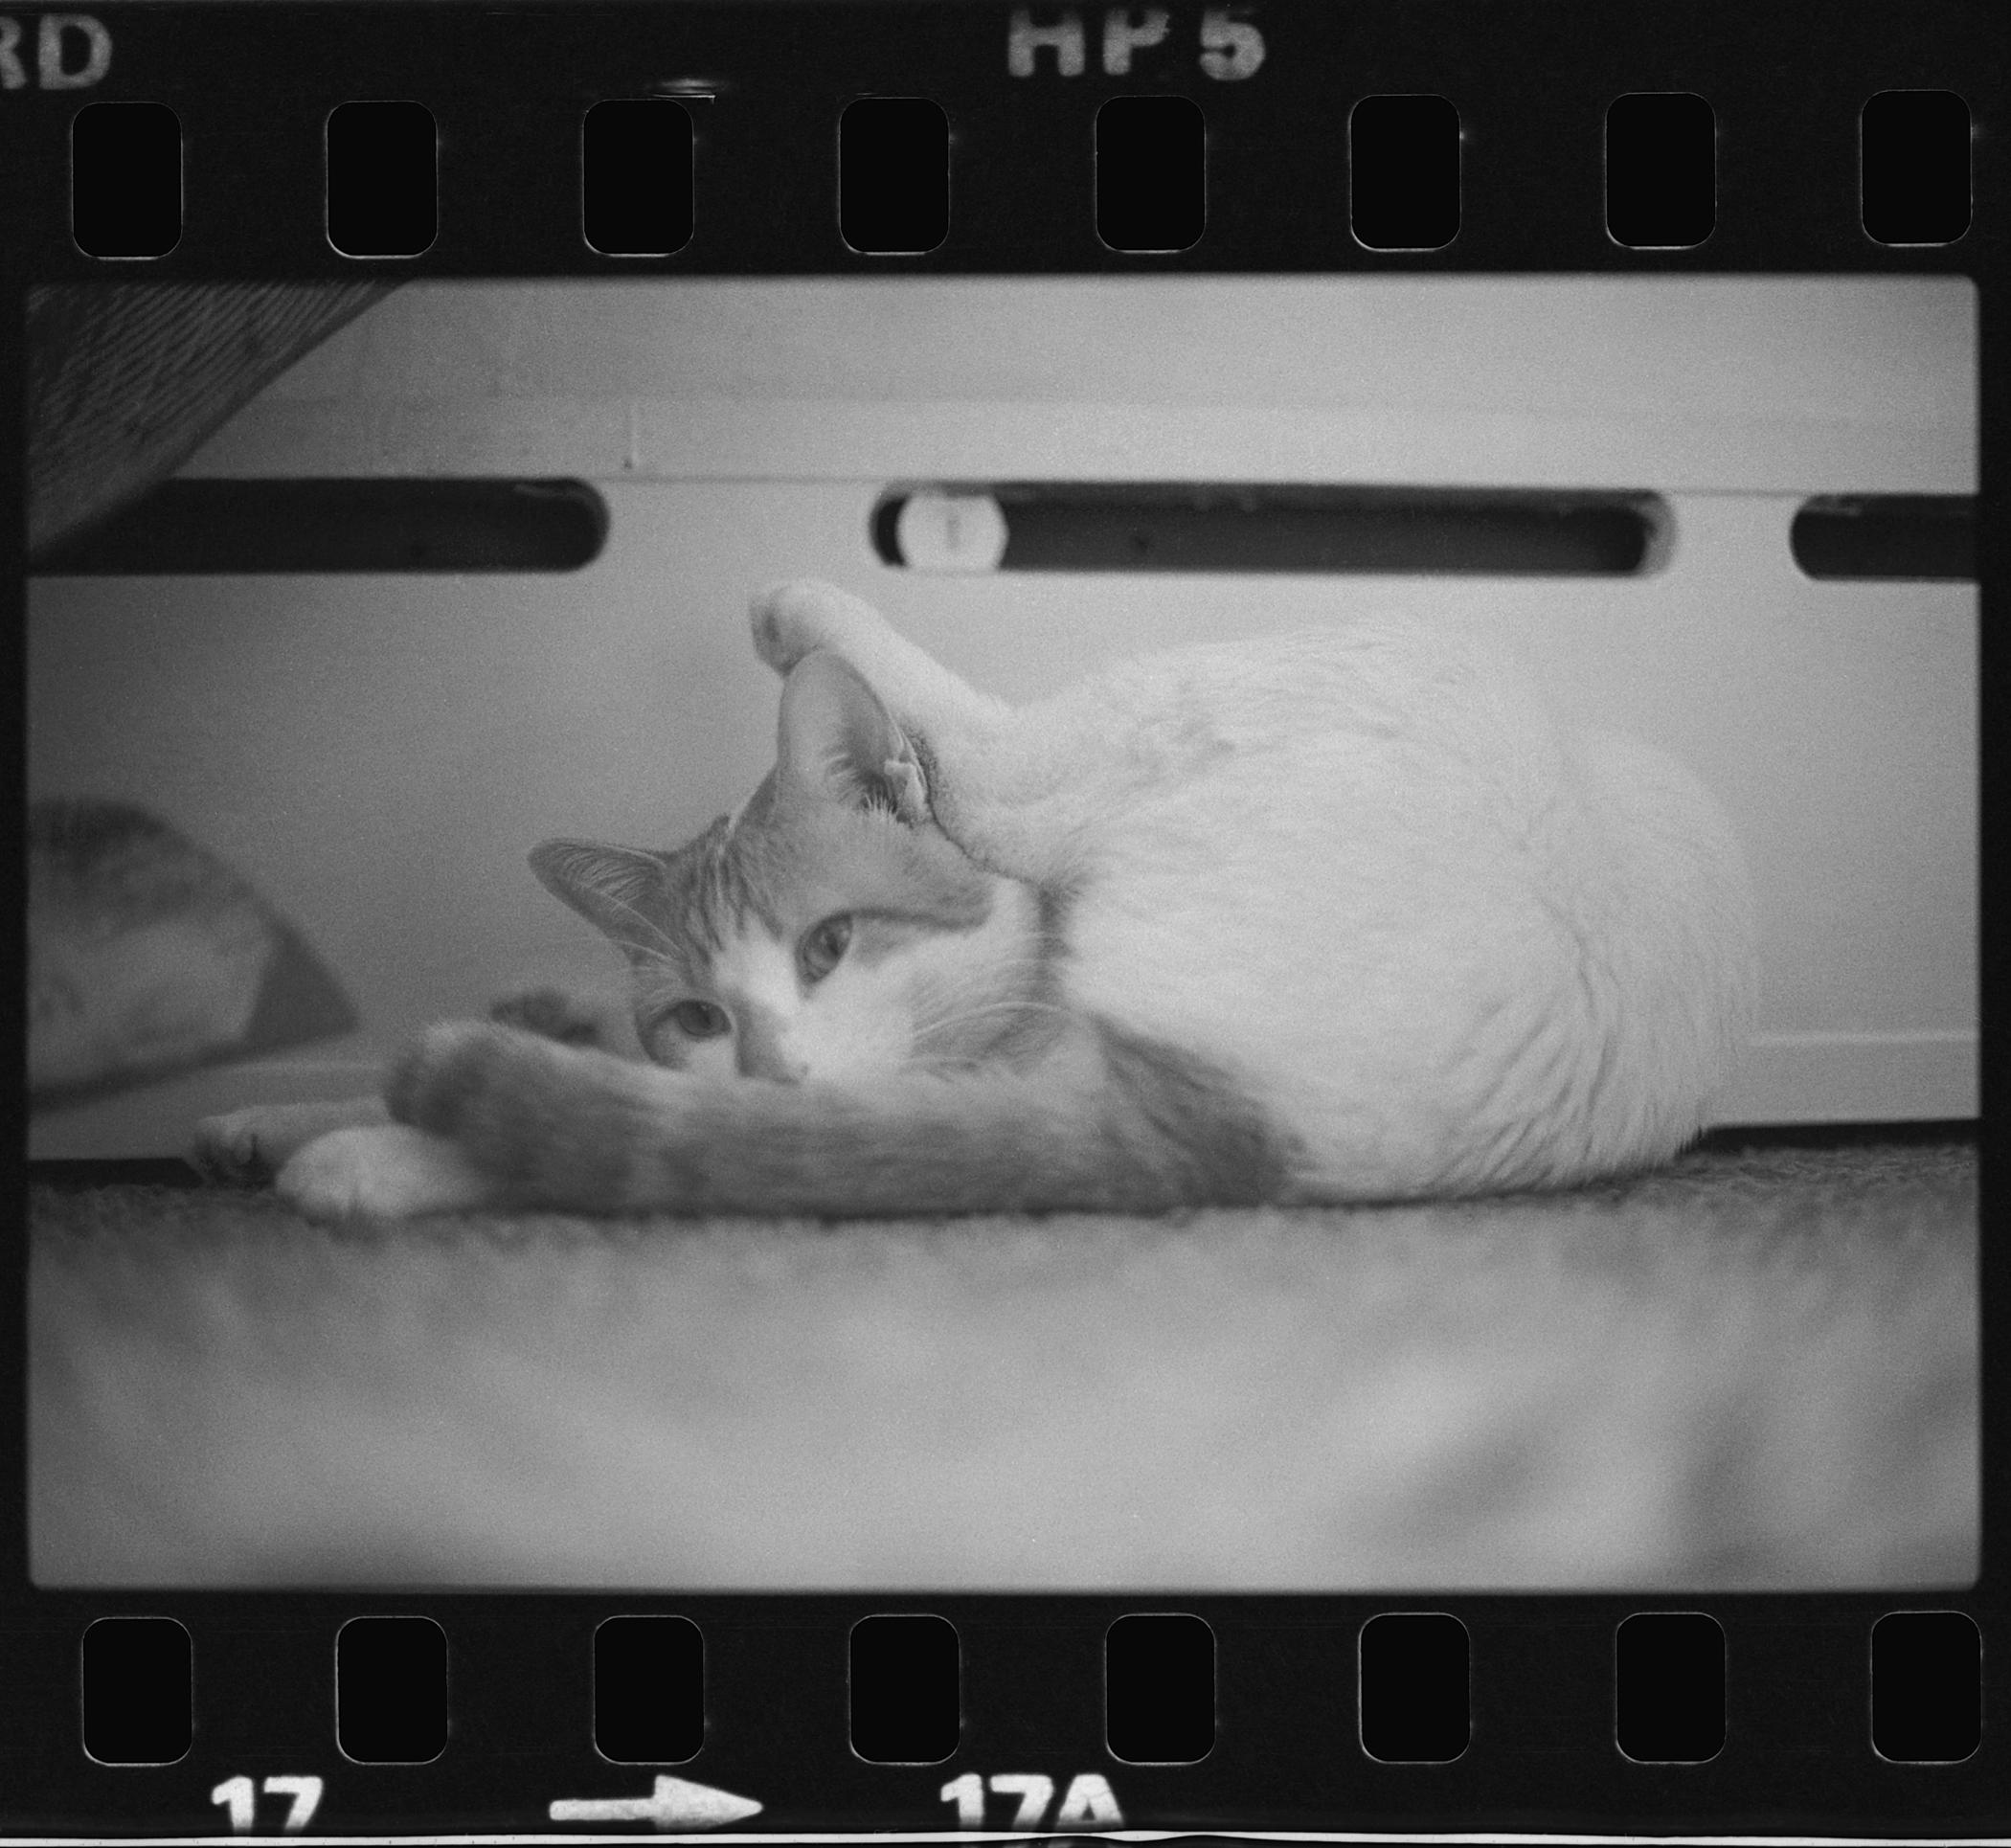 A black-and-white 35 mm film frame features a cat lying on the floor with its hind leg stretched over its head.